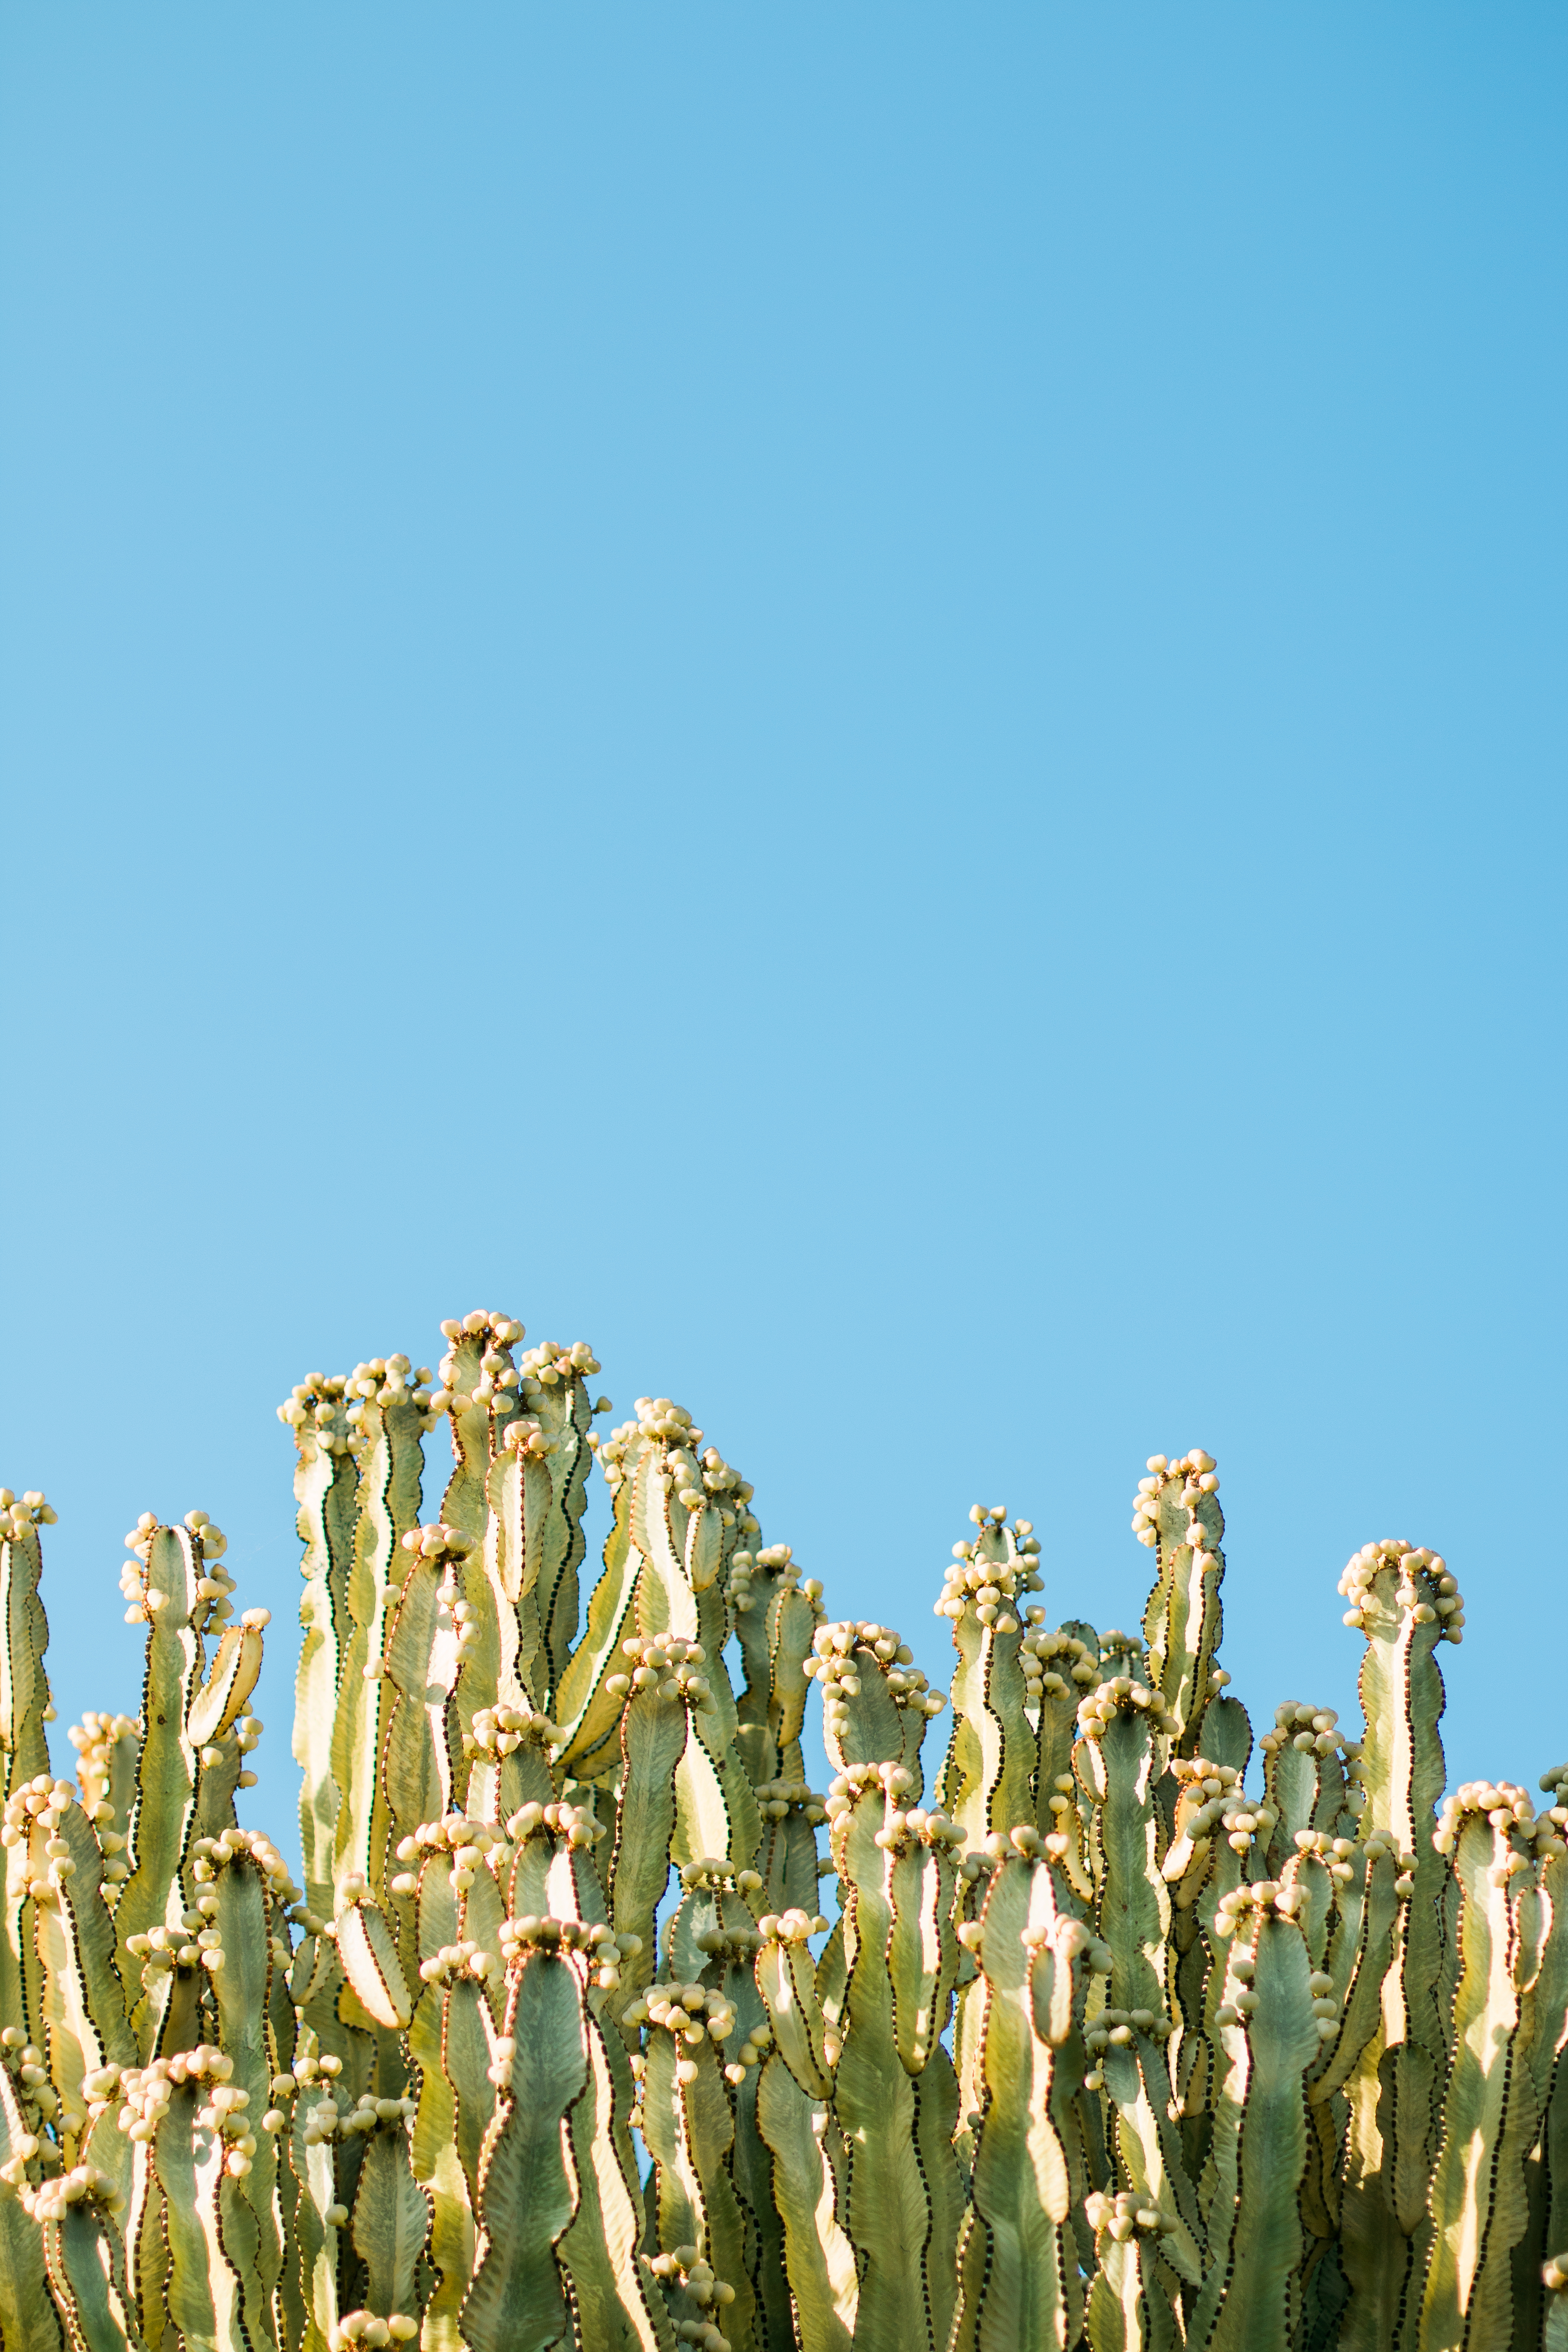 Cactus Plants Under The Starry Sky 183 Free Stock Photo